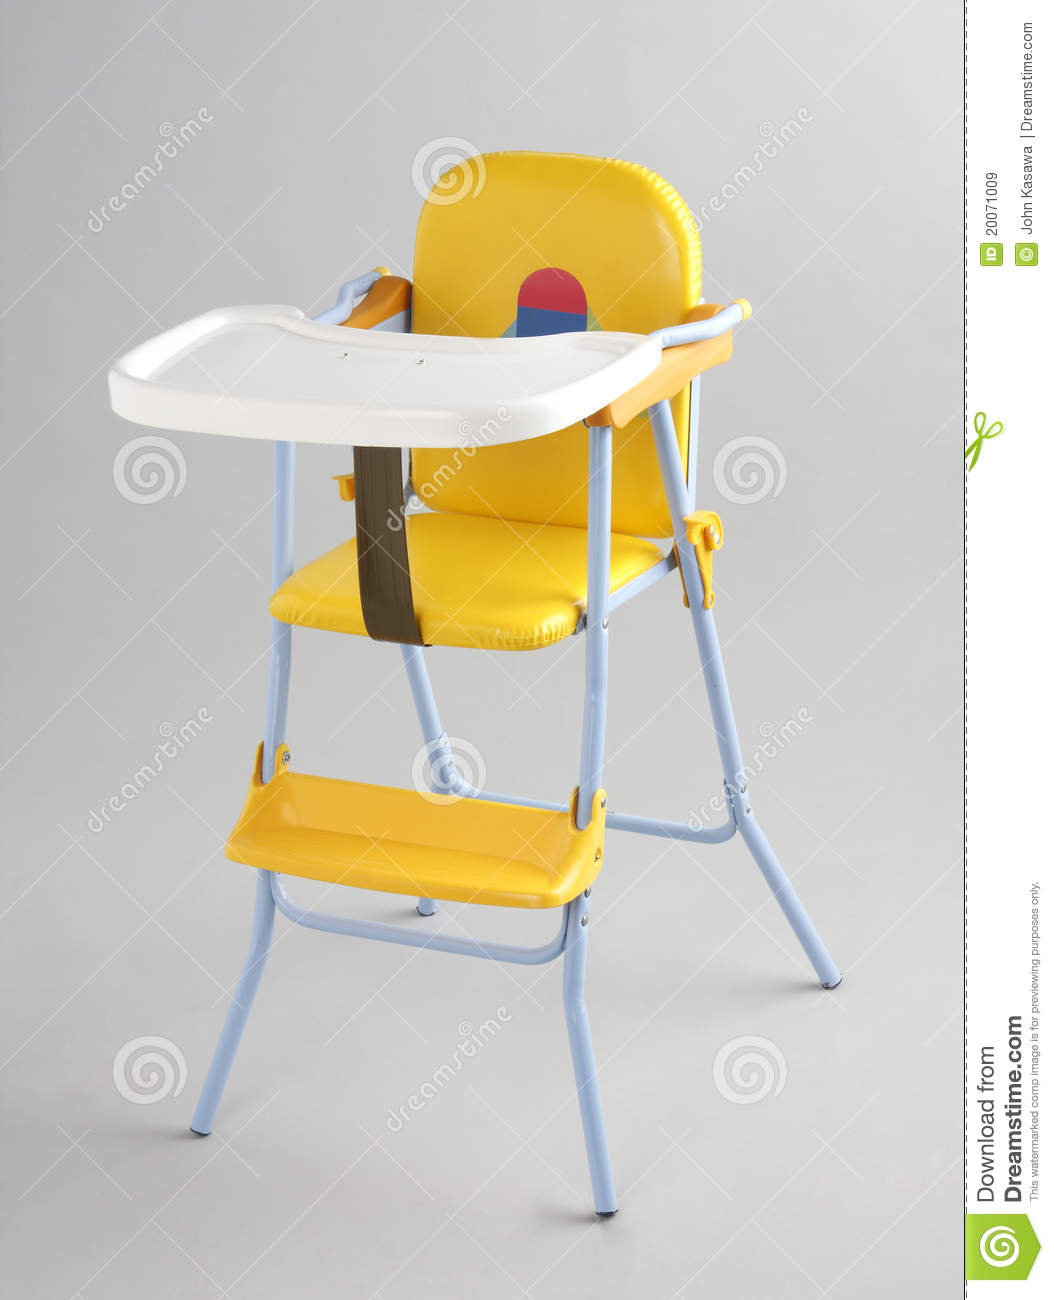 Food Chair Baby Eating Food Chair Isolated Royalty Free Stock Images